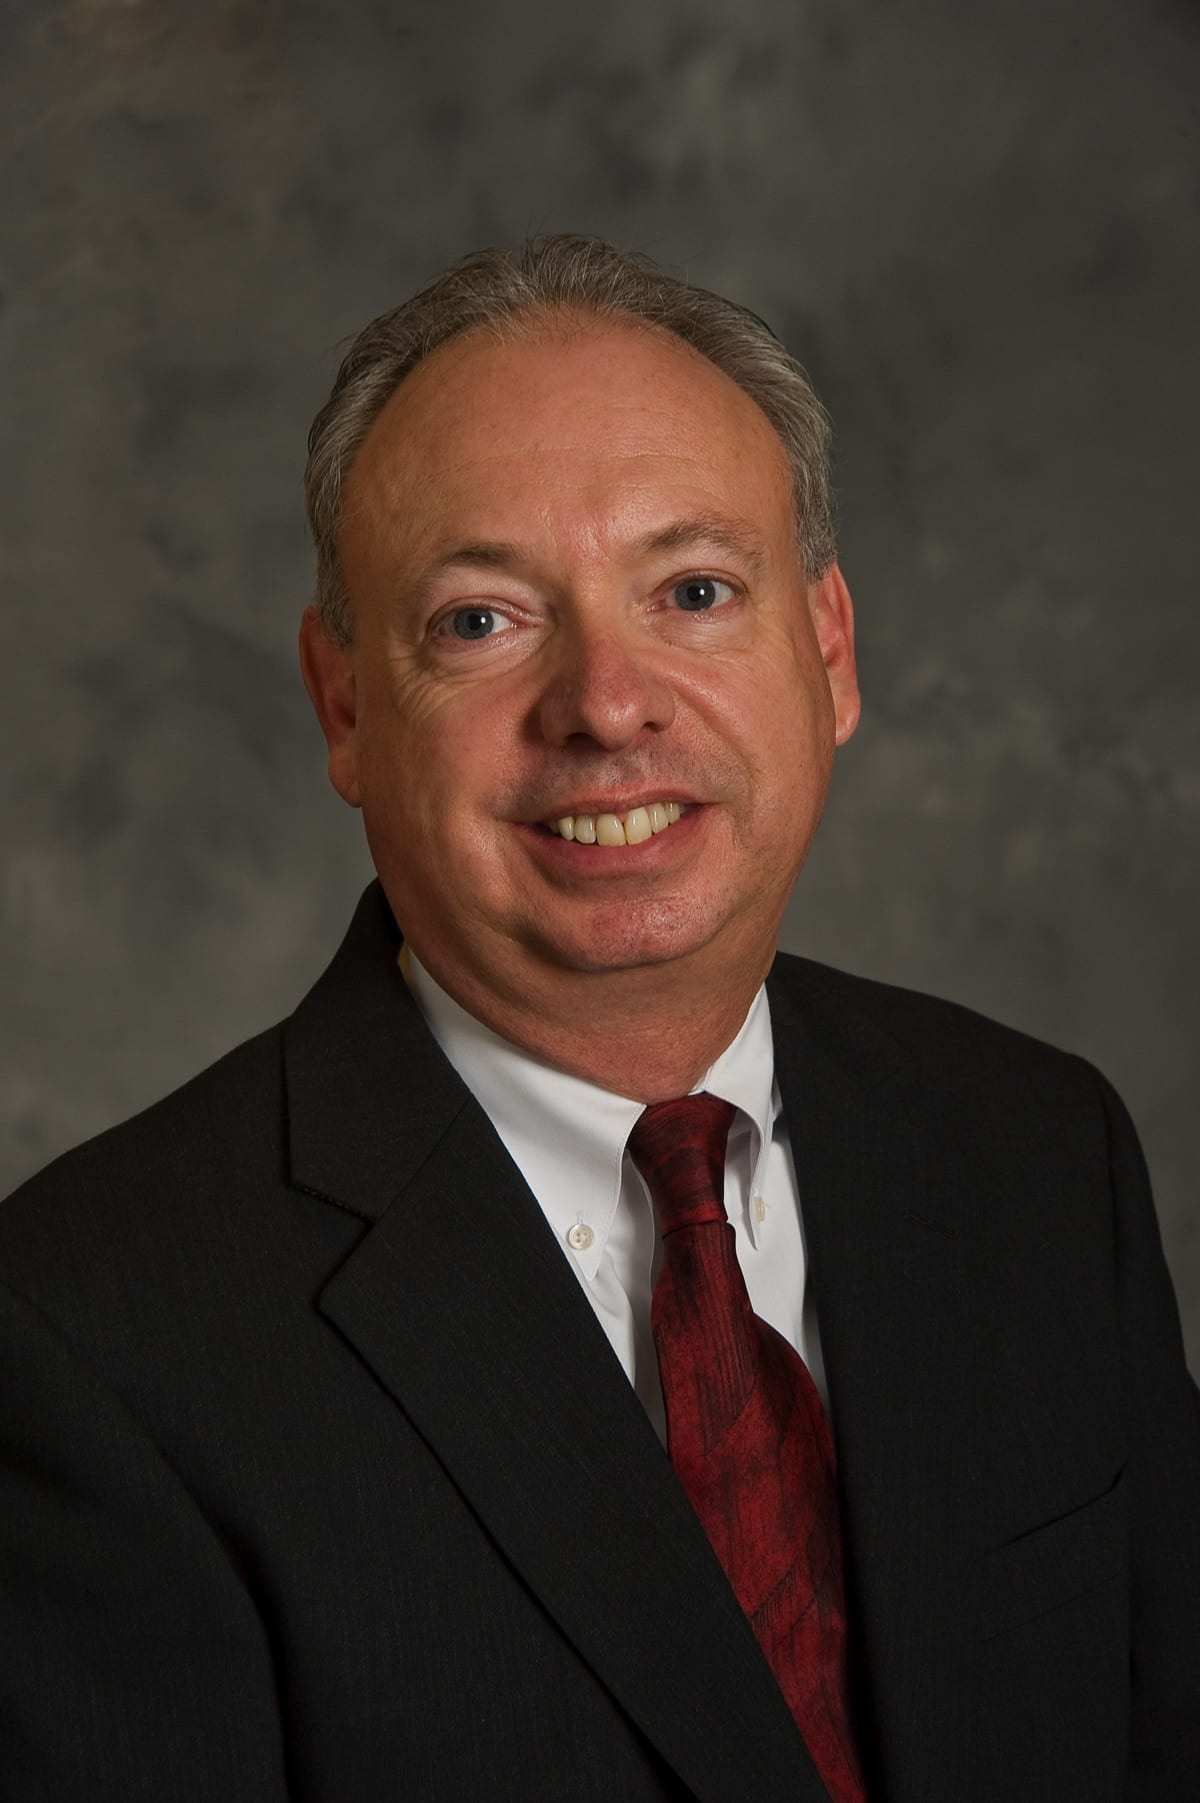 LaFoy appointed L-3 Avionics Systems president